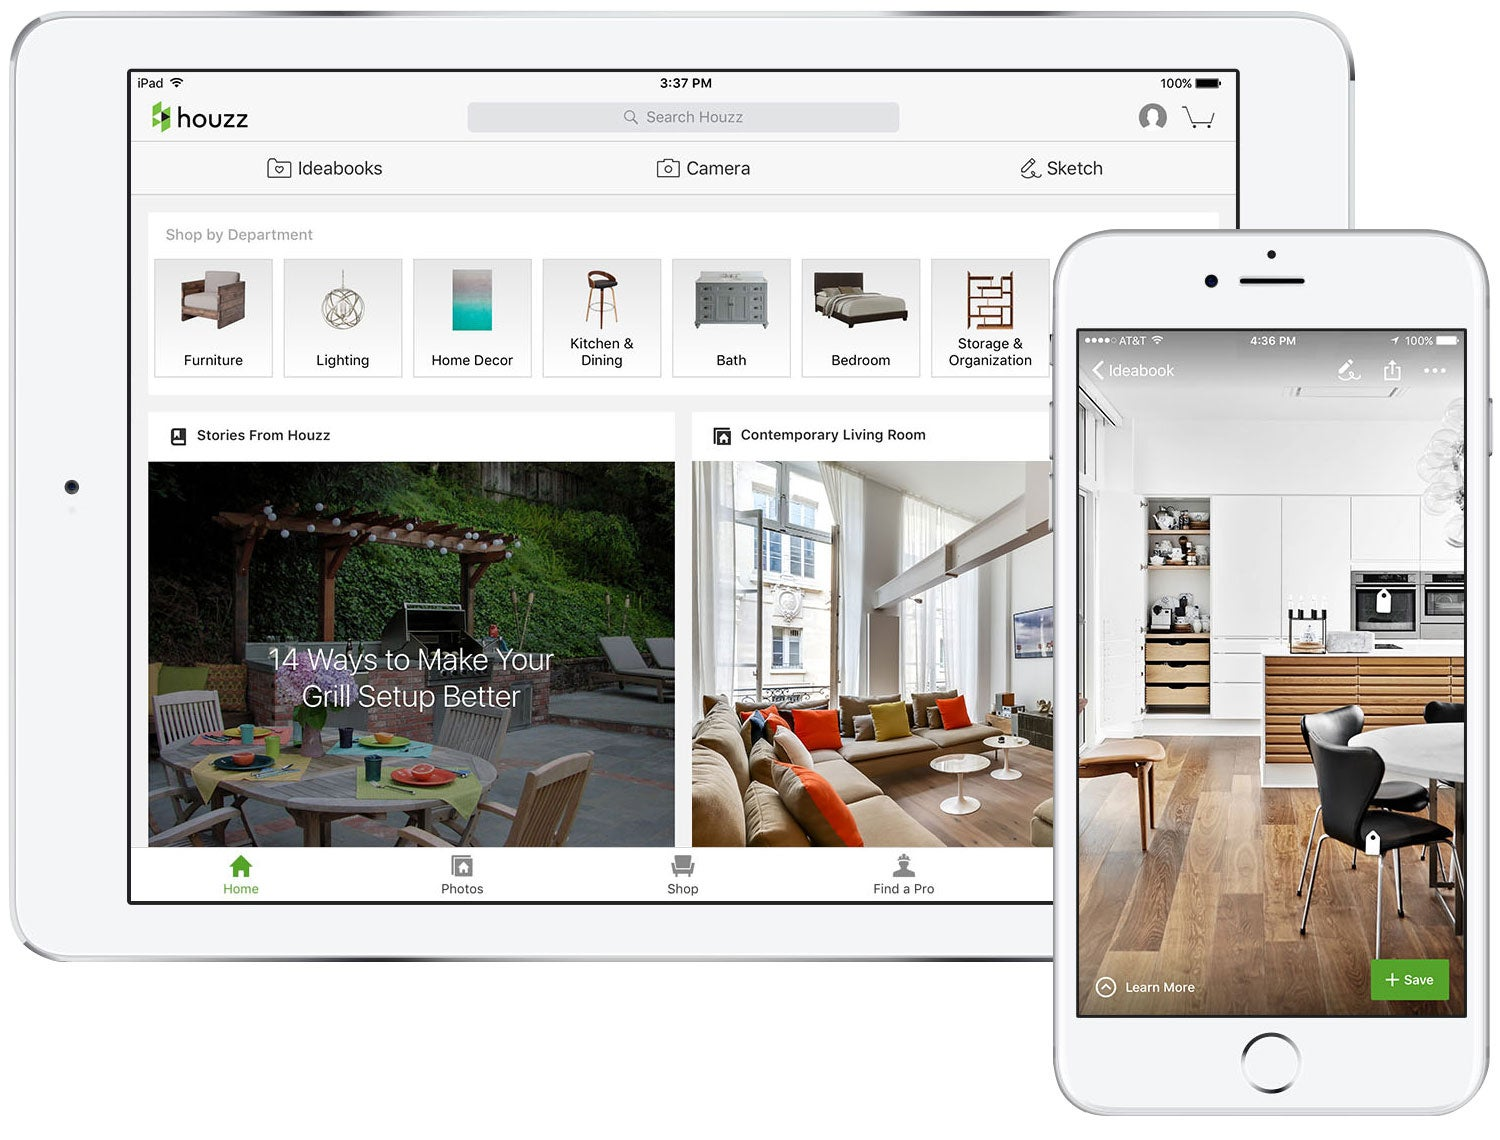 Interior design apps 17 must have home decorating apps Houzz design app